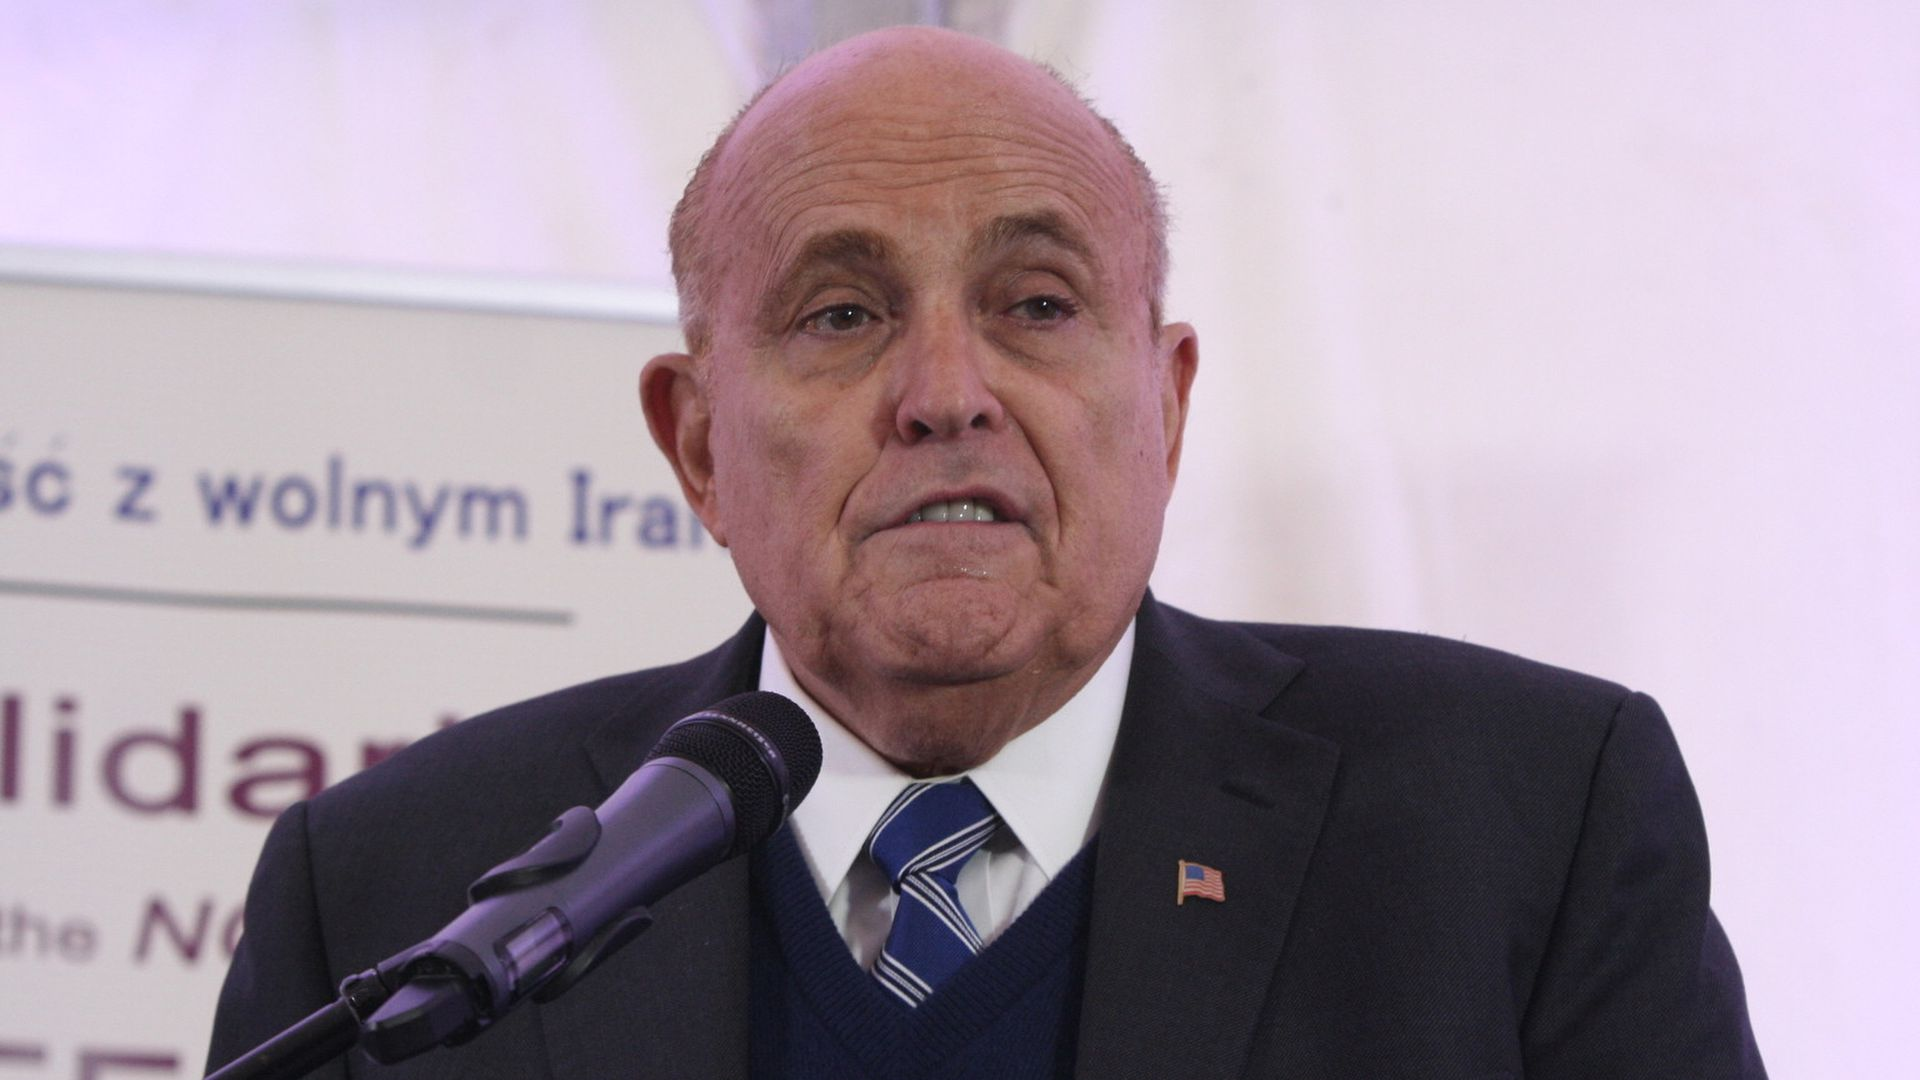 Rudy Giuliani met with a former Ukranian diplomat last week, amid push to investigate Russia probe